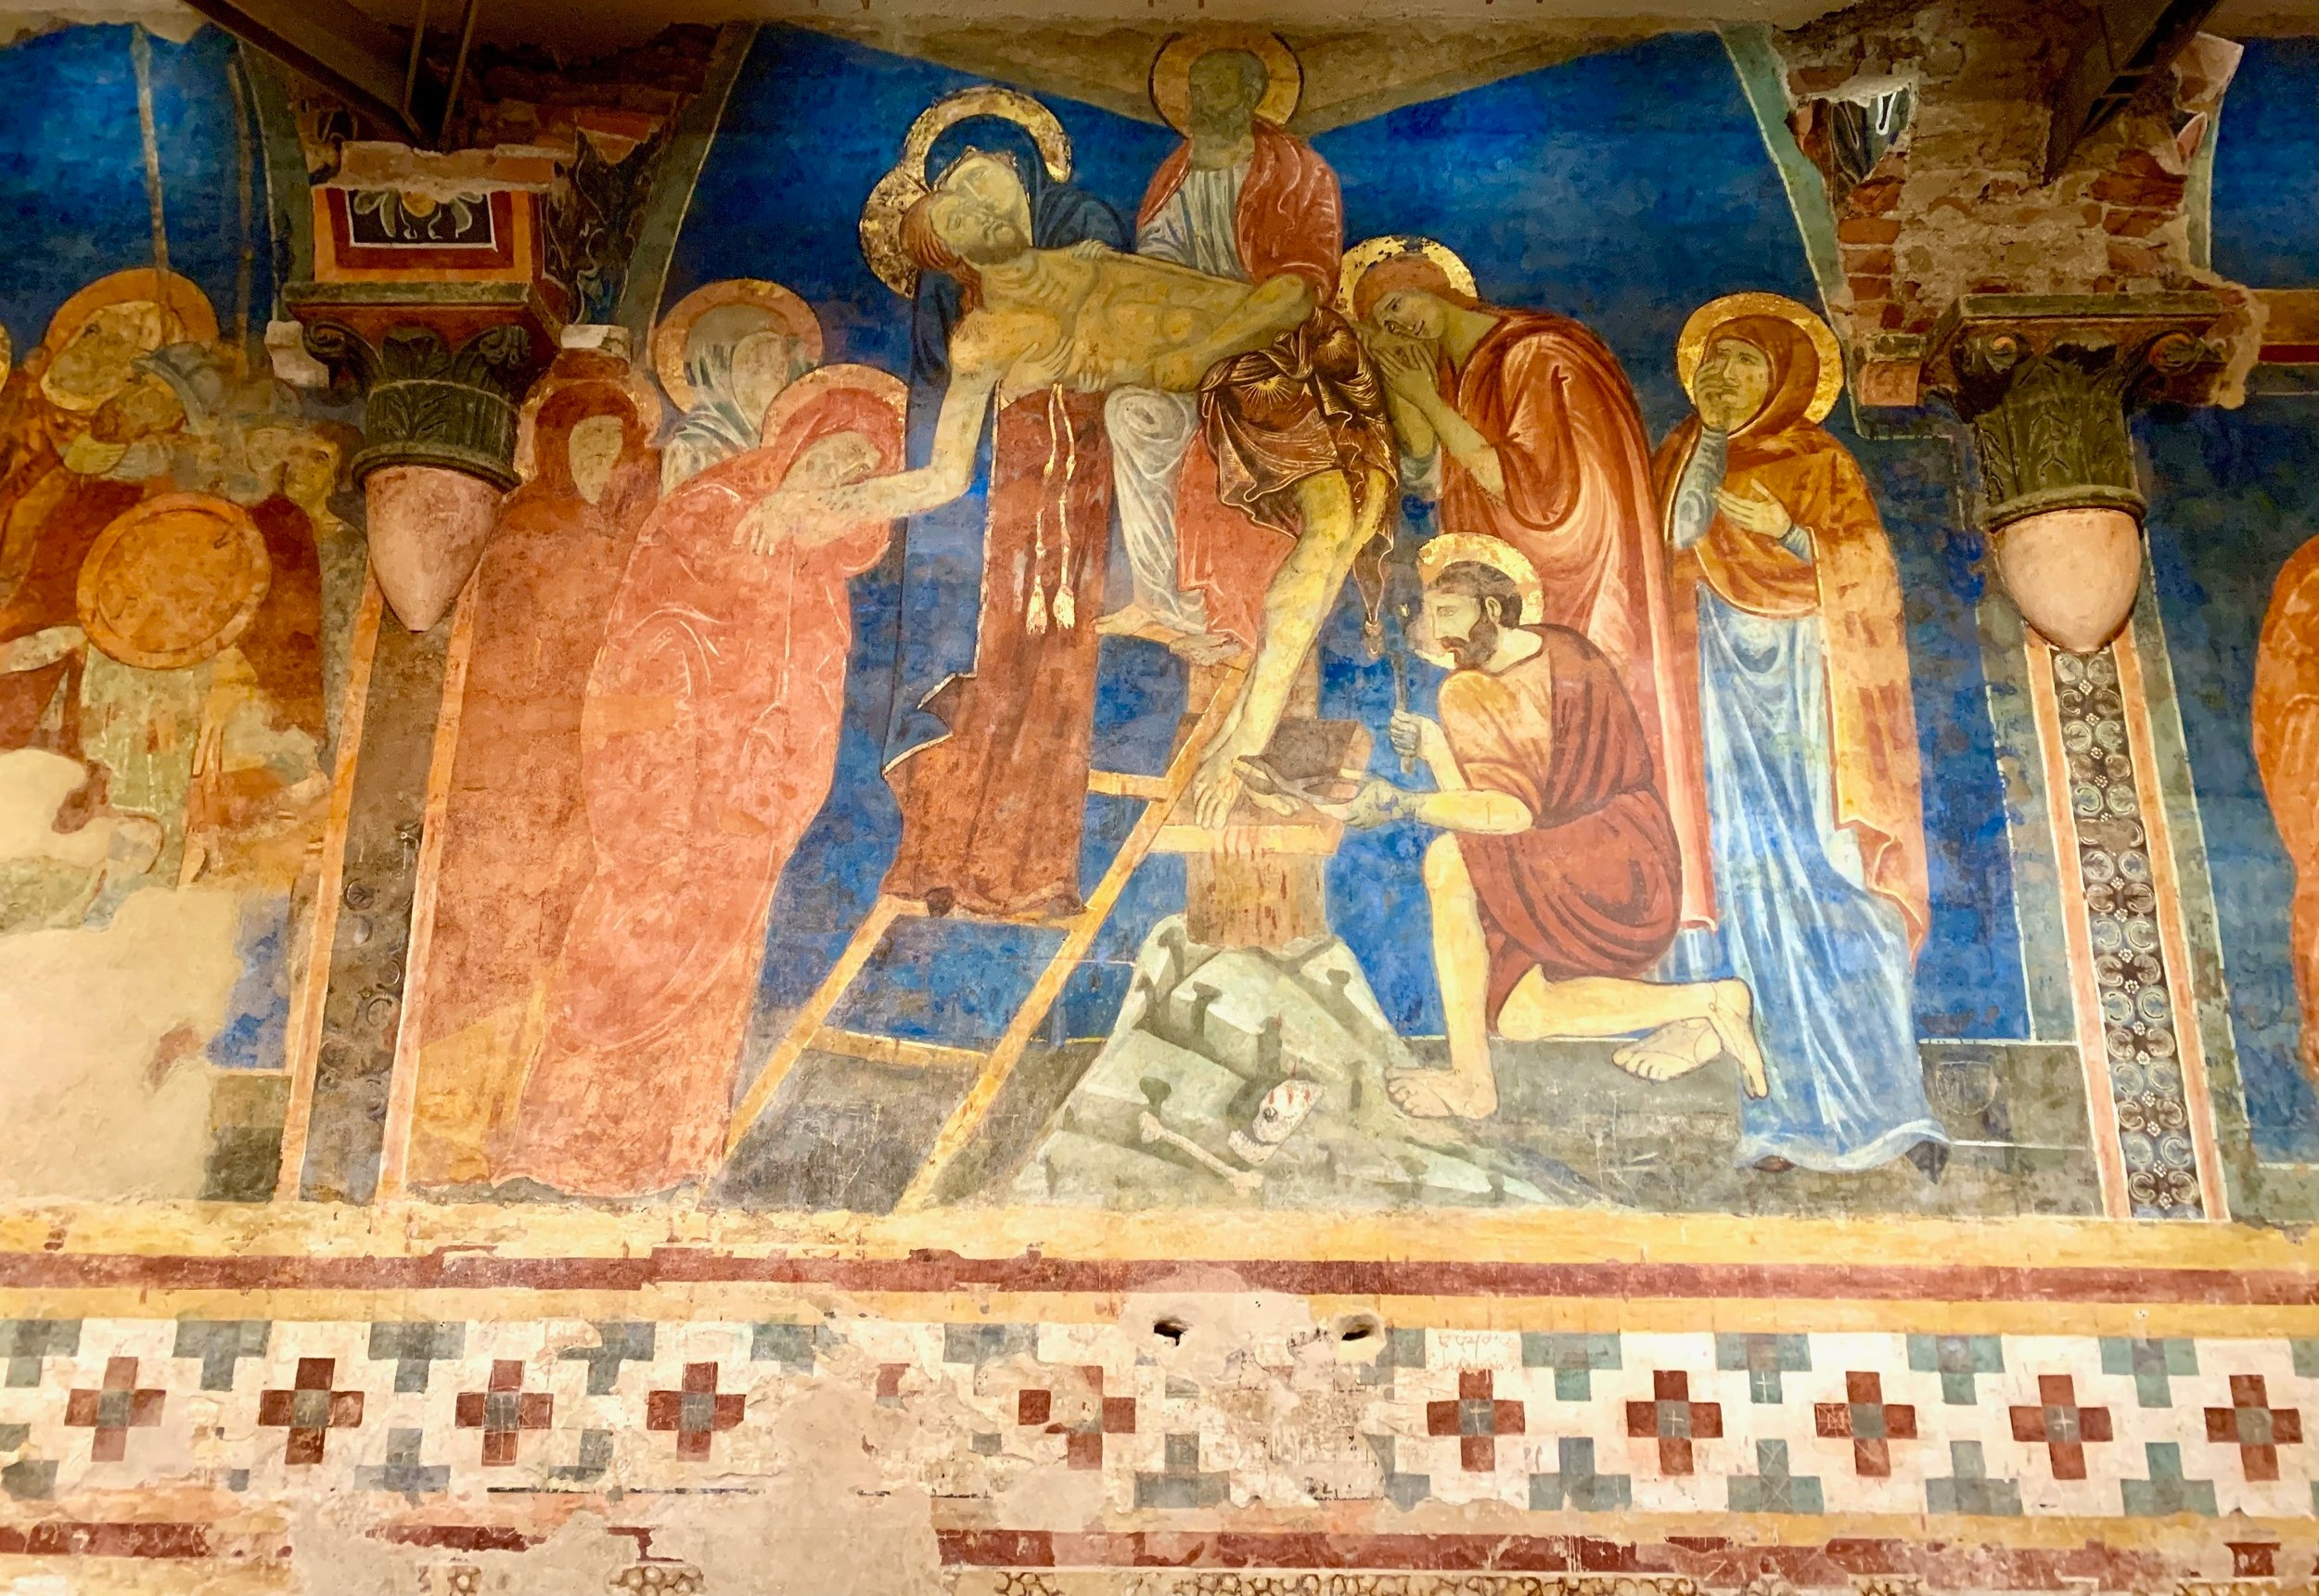 13th century fresco in the Crypt of the Duomo di Siena